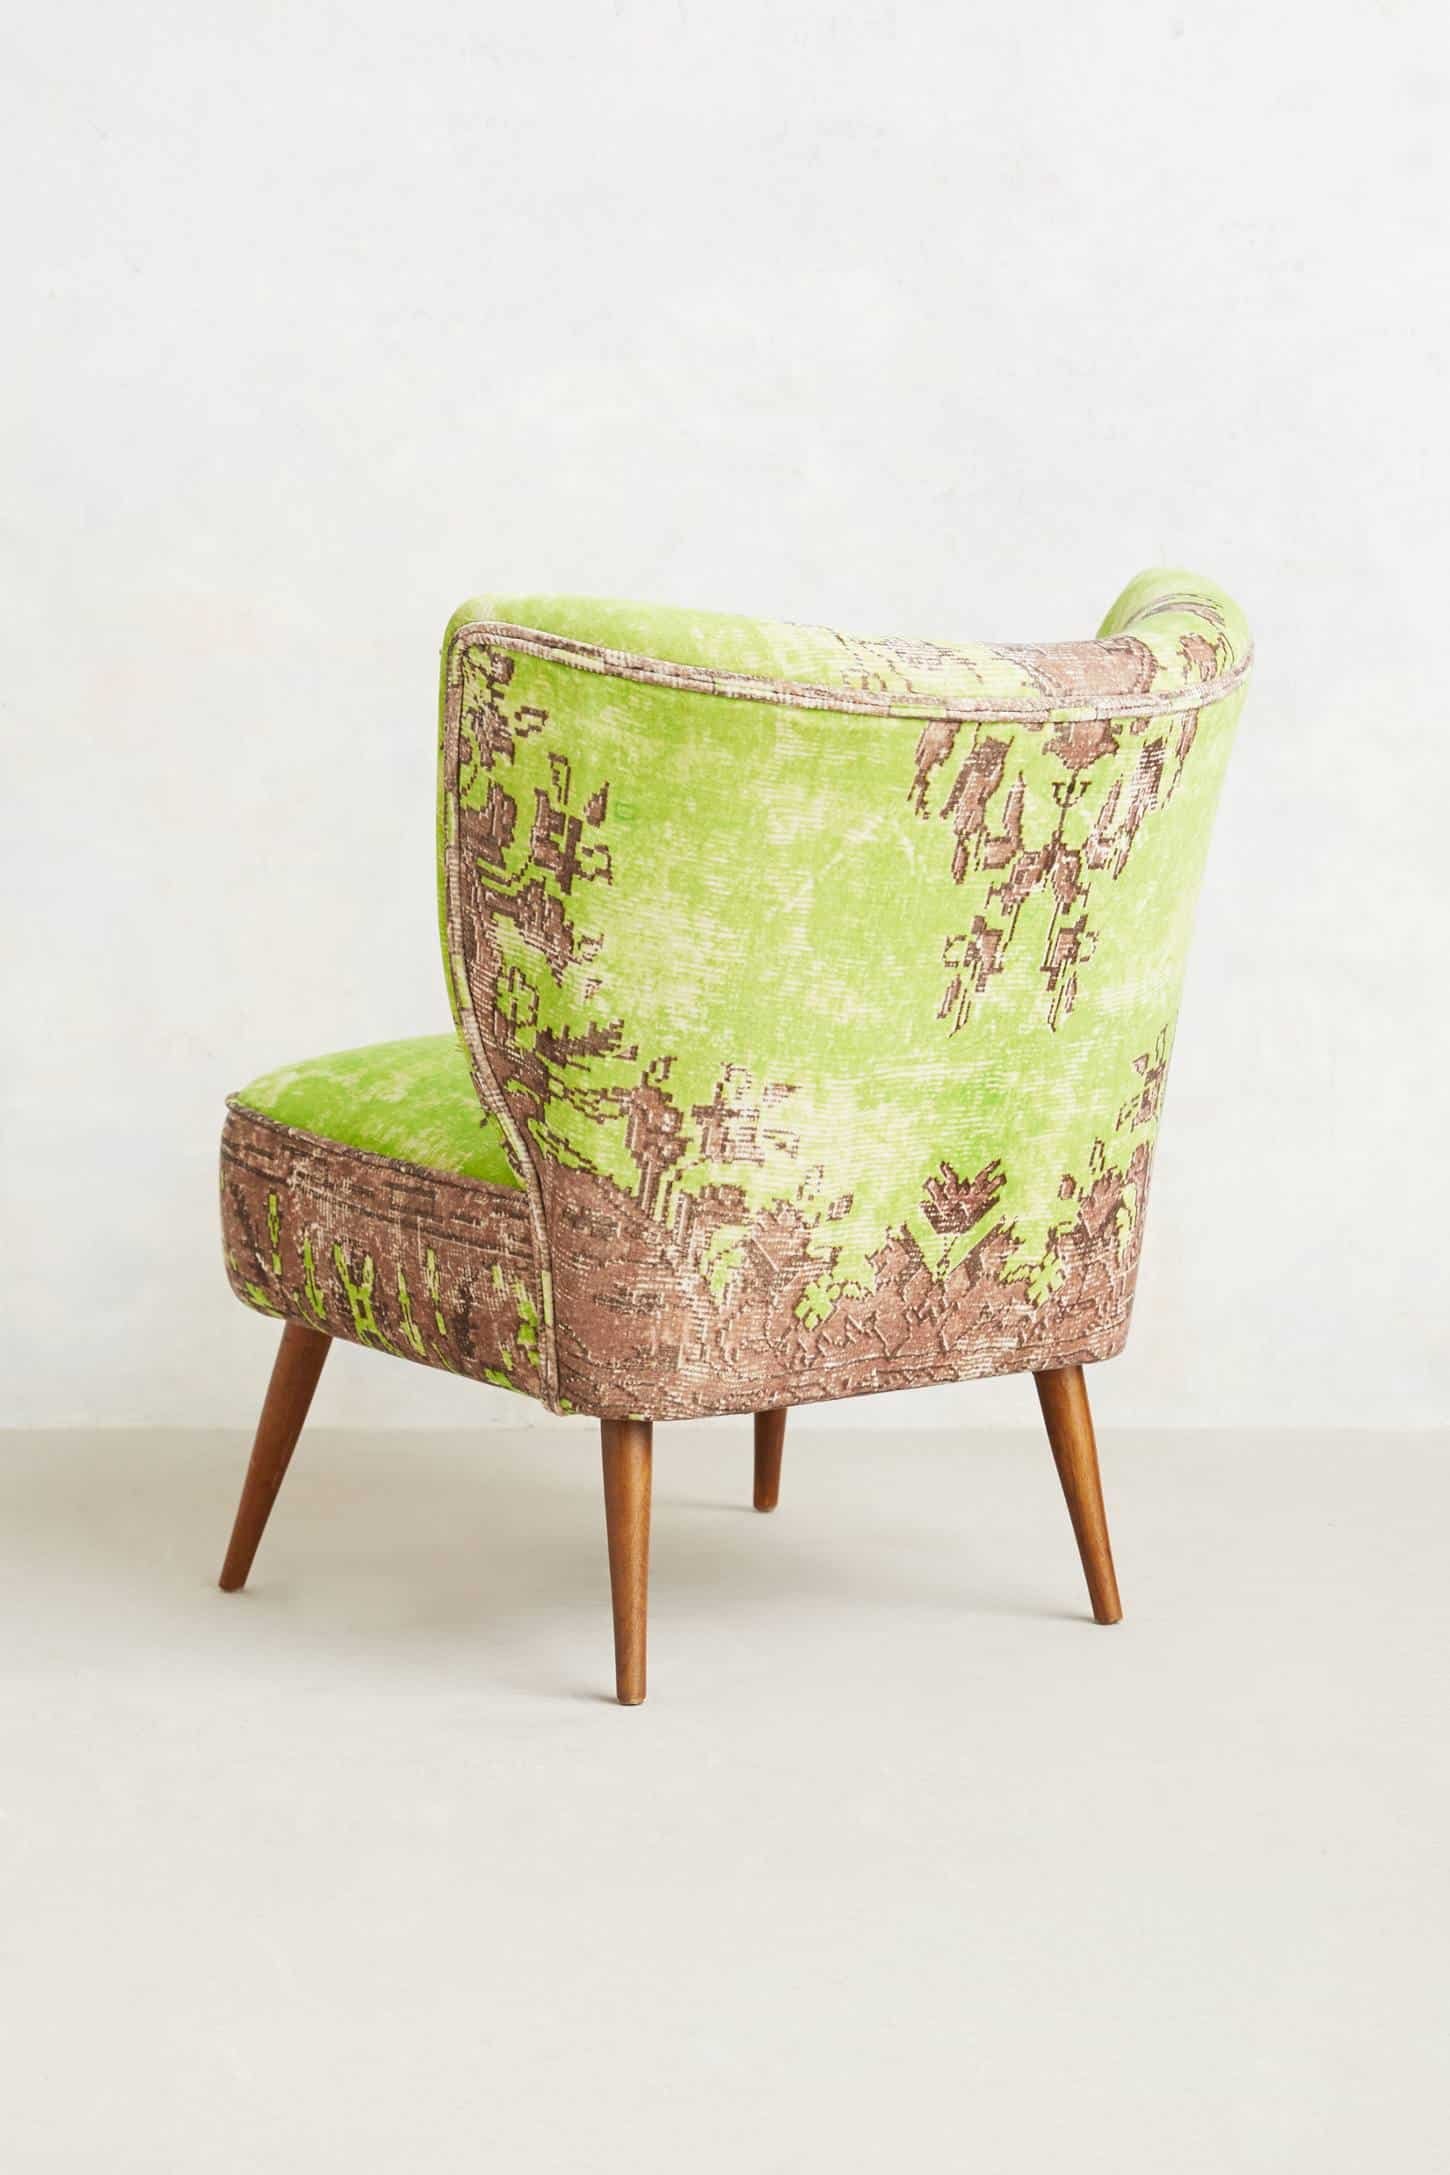 anthropologie style furniture. View In Gallery Moresque Occasional Chairs Anthropologie 2%20 Thumb Autox945 51304 These Washed Velvet Beauties Are Style Furniture